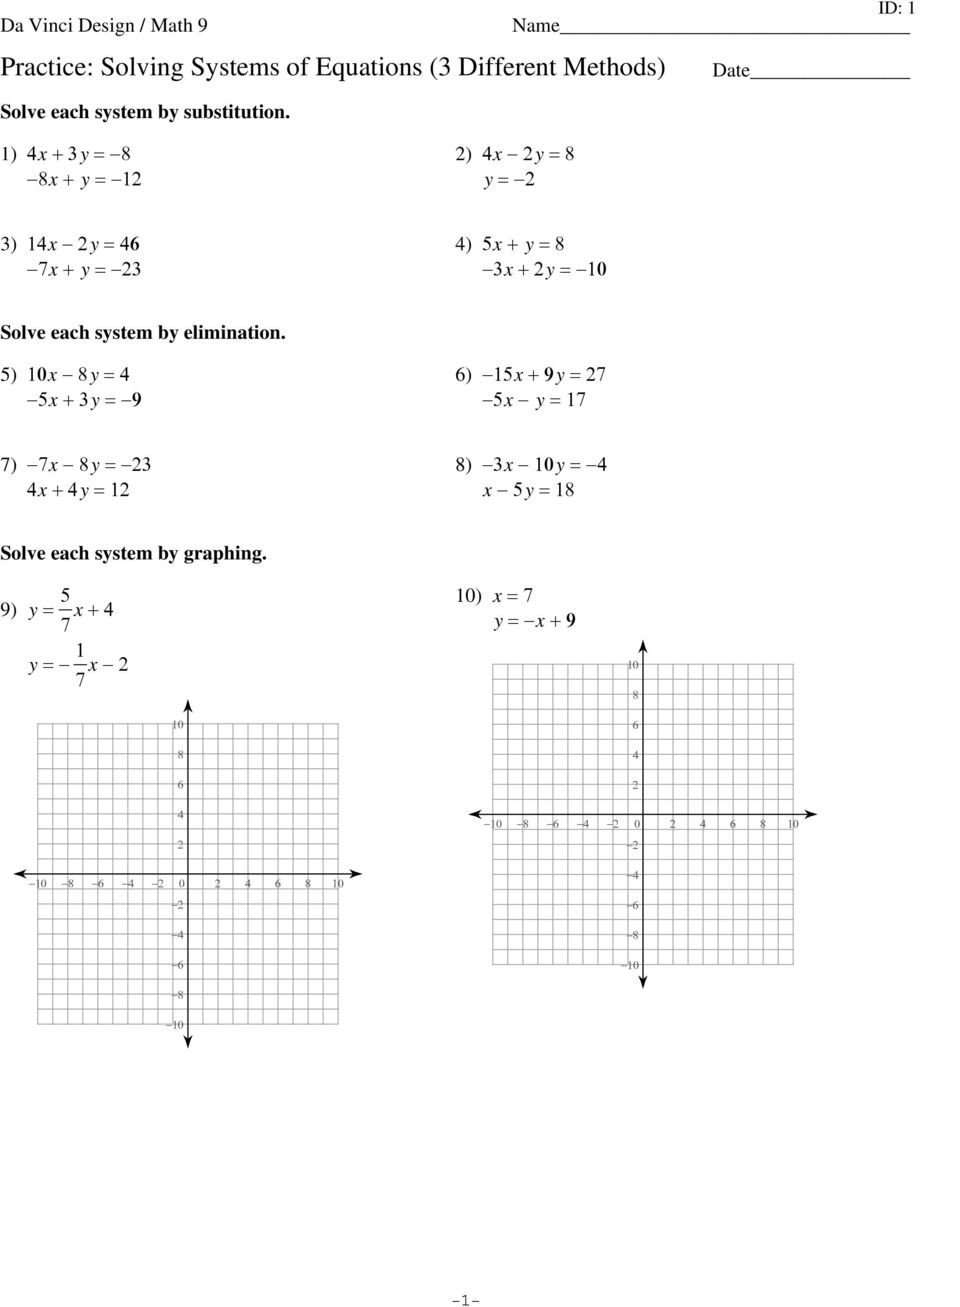 Solving System by Elimination Worksheet 3 1 Practice solving Systems Equations by Graphing Answer